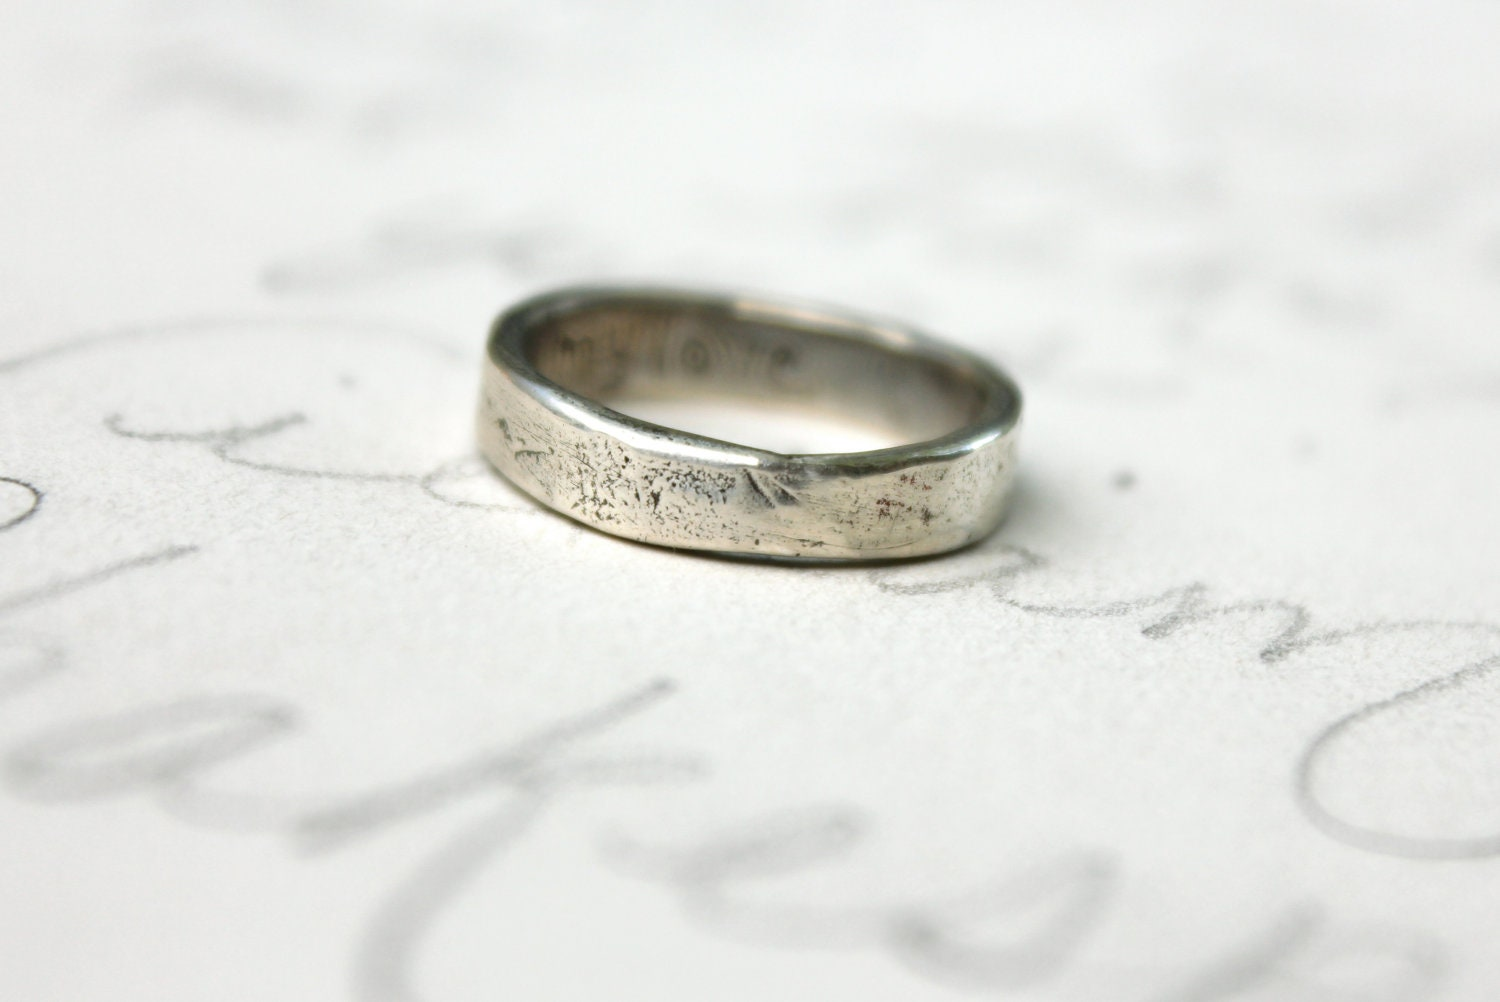 silver wedding band ring smooth rustic wedding band womens With rustic womens wedding rings